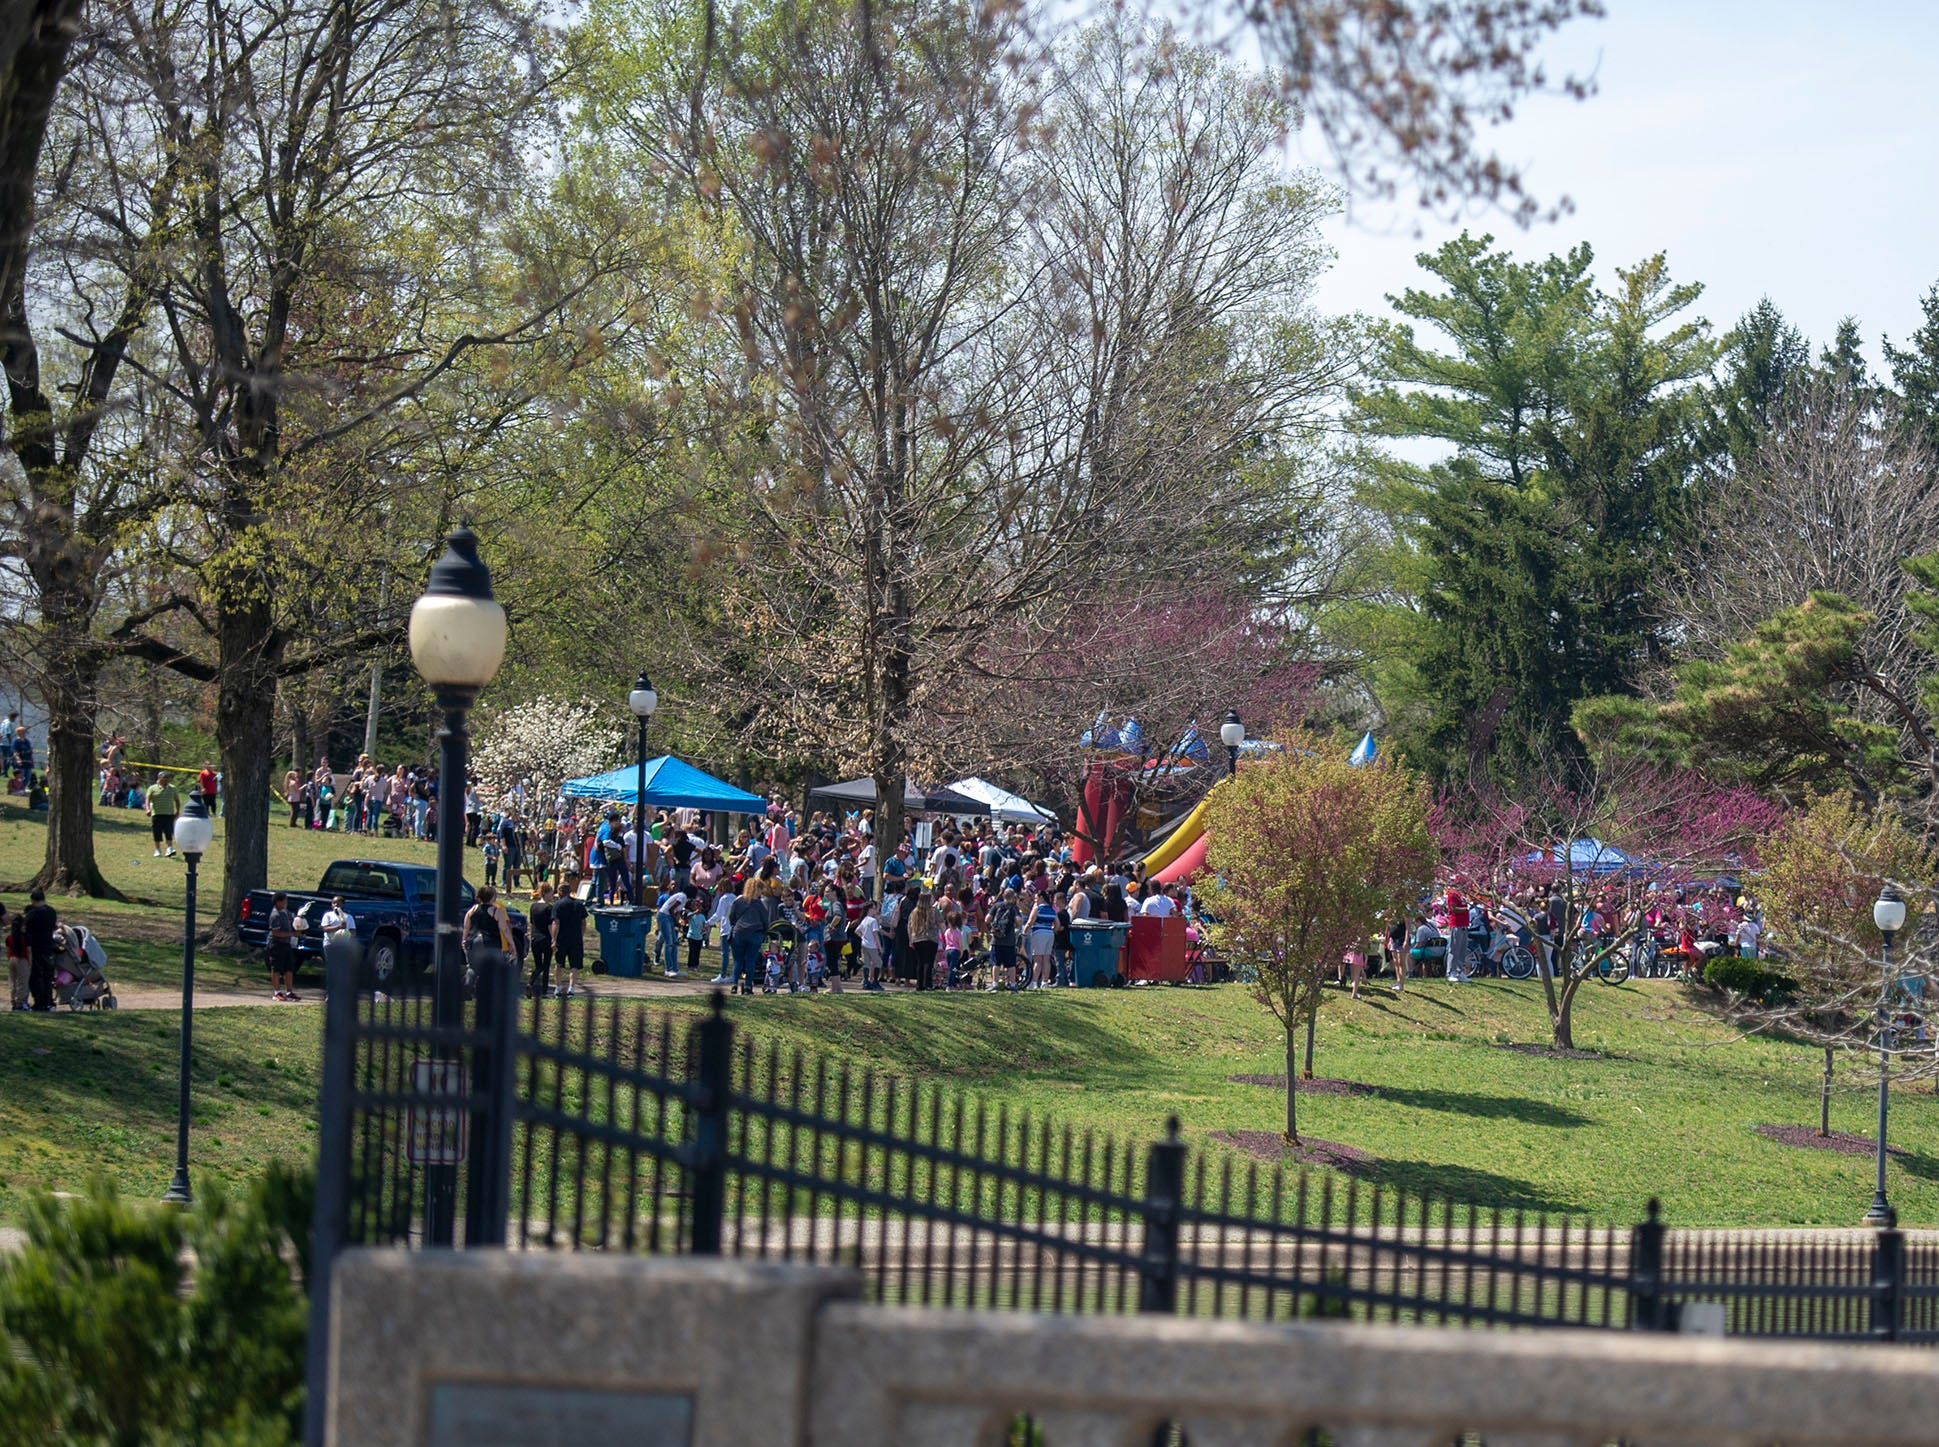 All of the eggs were found, but the fun continues at the City of York's Easter Egg Hunt at Kiwanis Lake on Saturday, April 13, 2019.